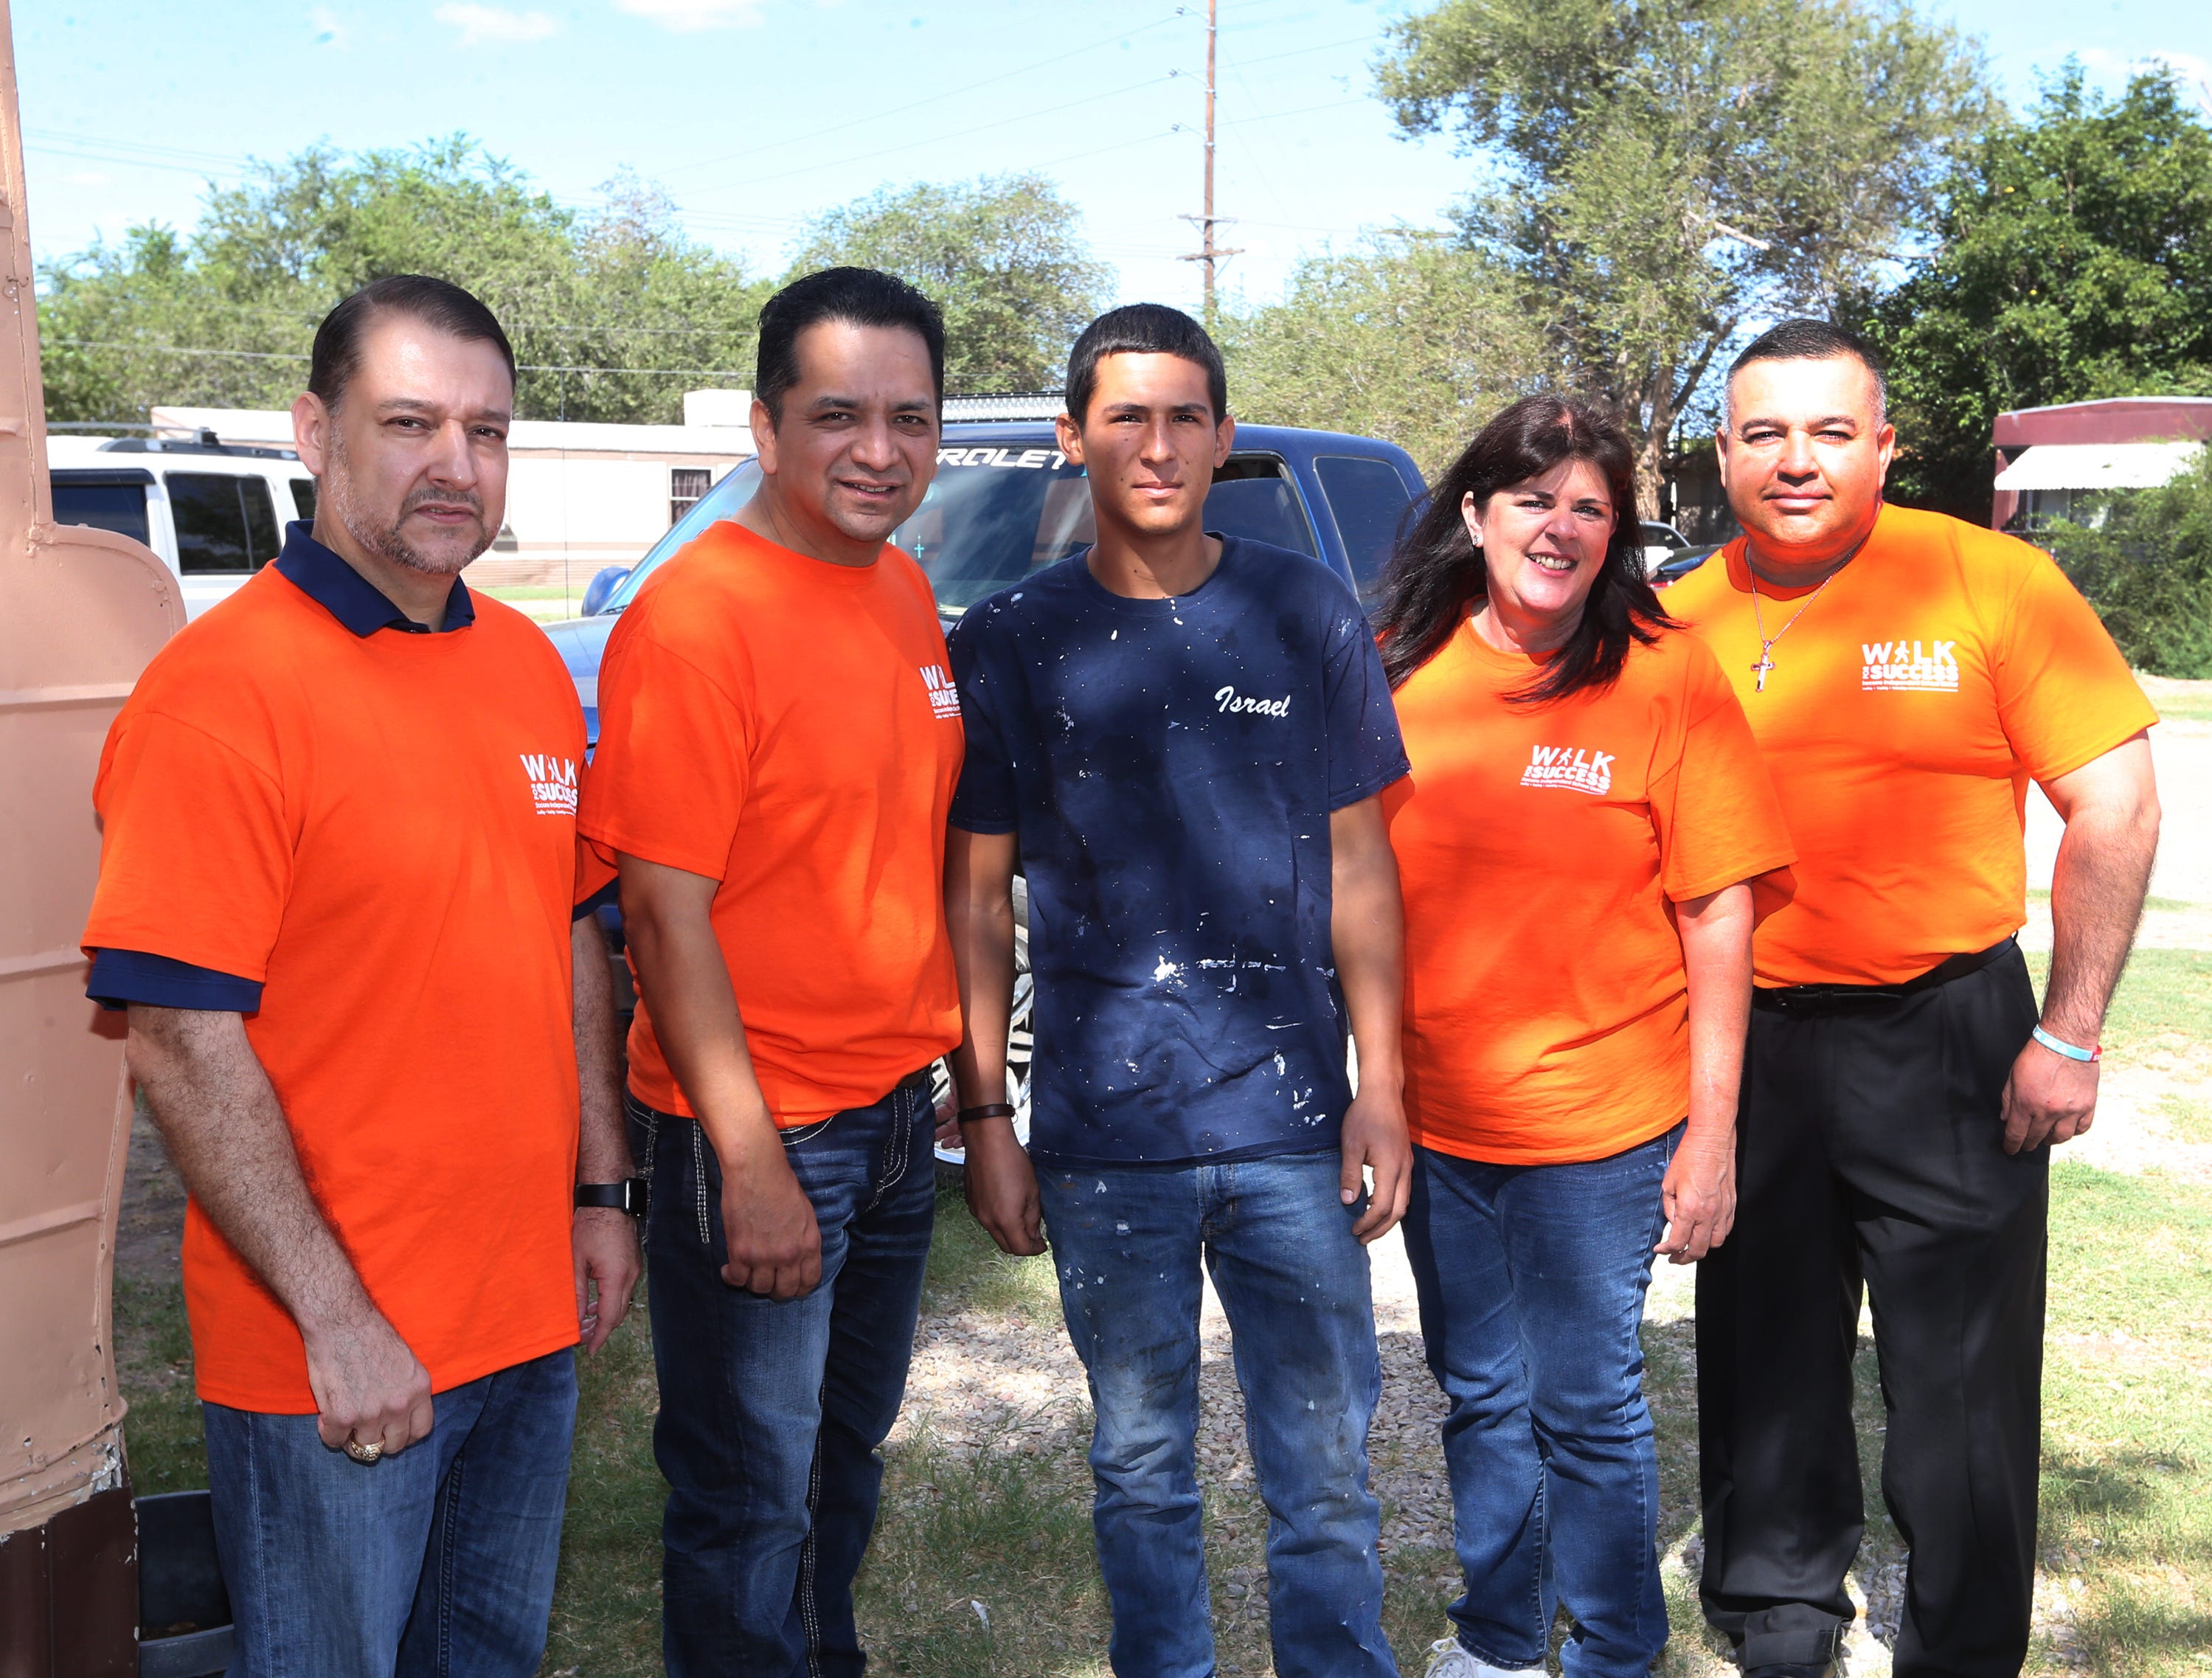 A Socorro school district team poses with student Israel Rubio, center, during the district's 5th annual Walk for Success Saturday. They are from left: EPCC president William Serrata, Socorro school district superintendent Jose Espinoza, Socorro district board president Cynthia Najera and Socorro High School principal Josh Tovar.